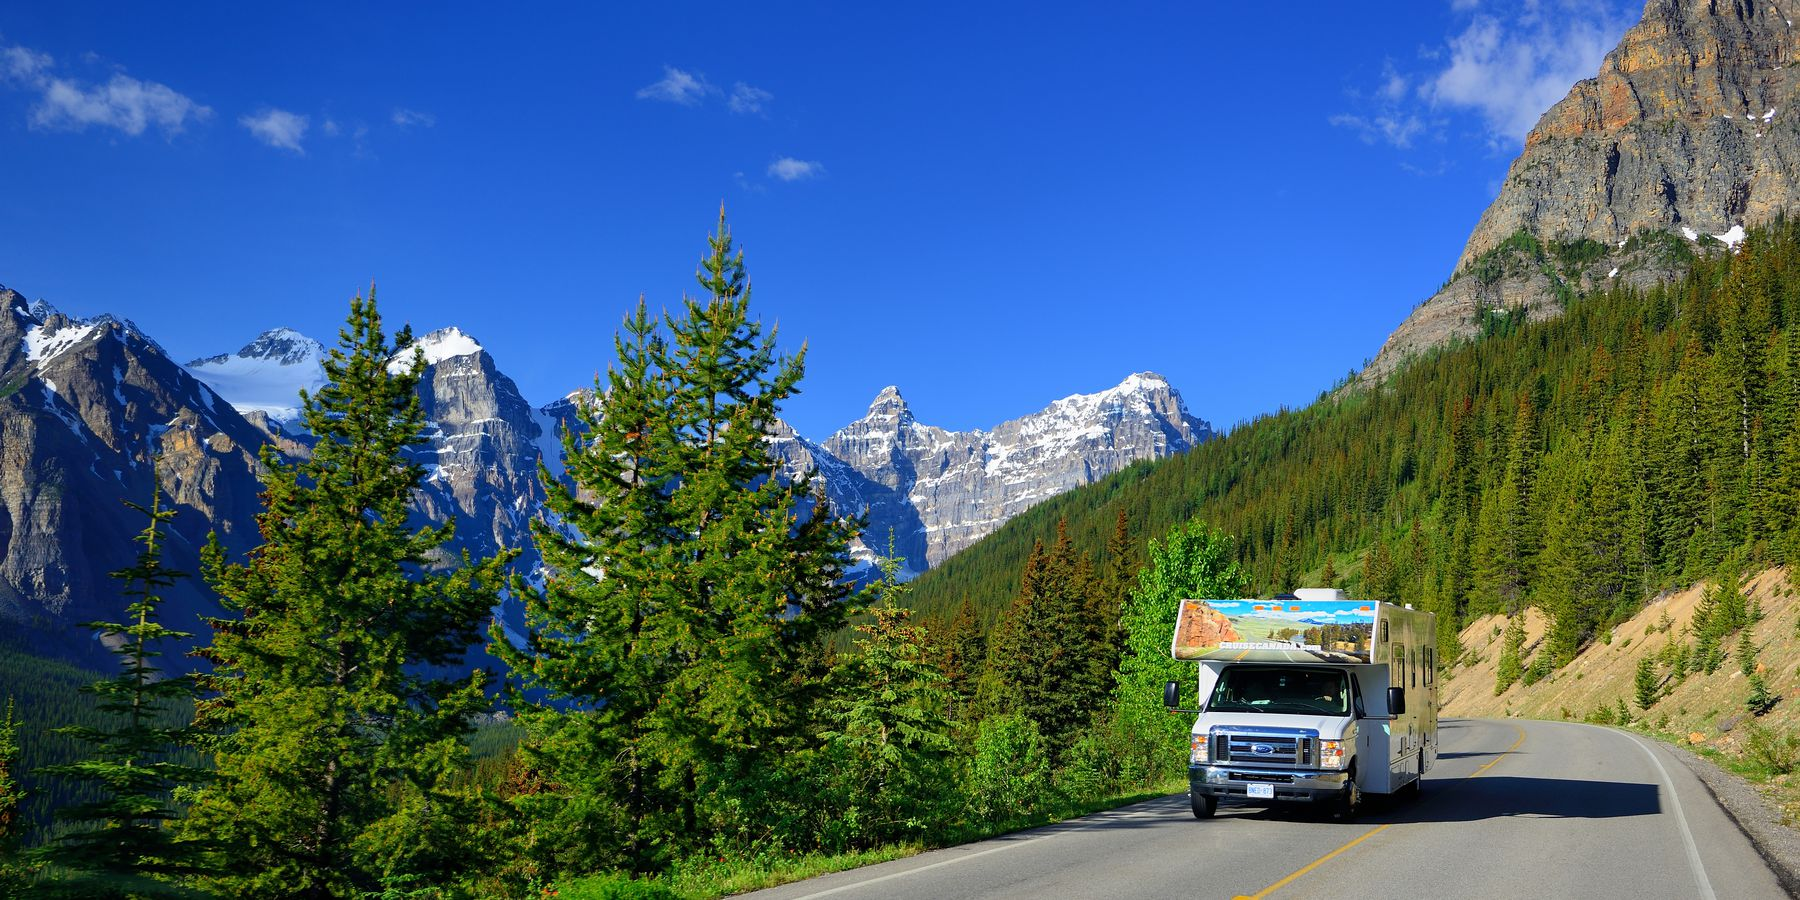 Met de camper toeren over de Moraine Lake Road